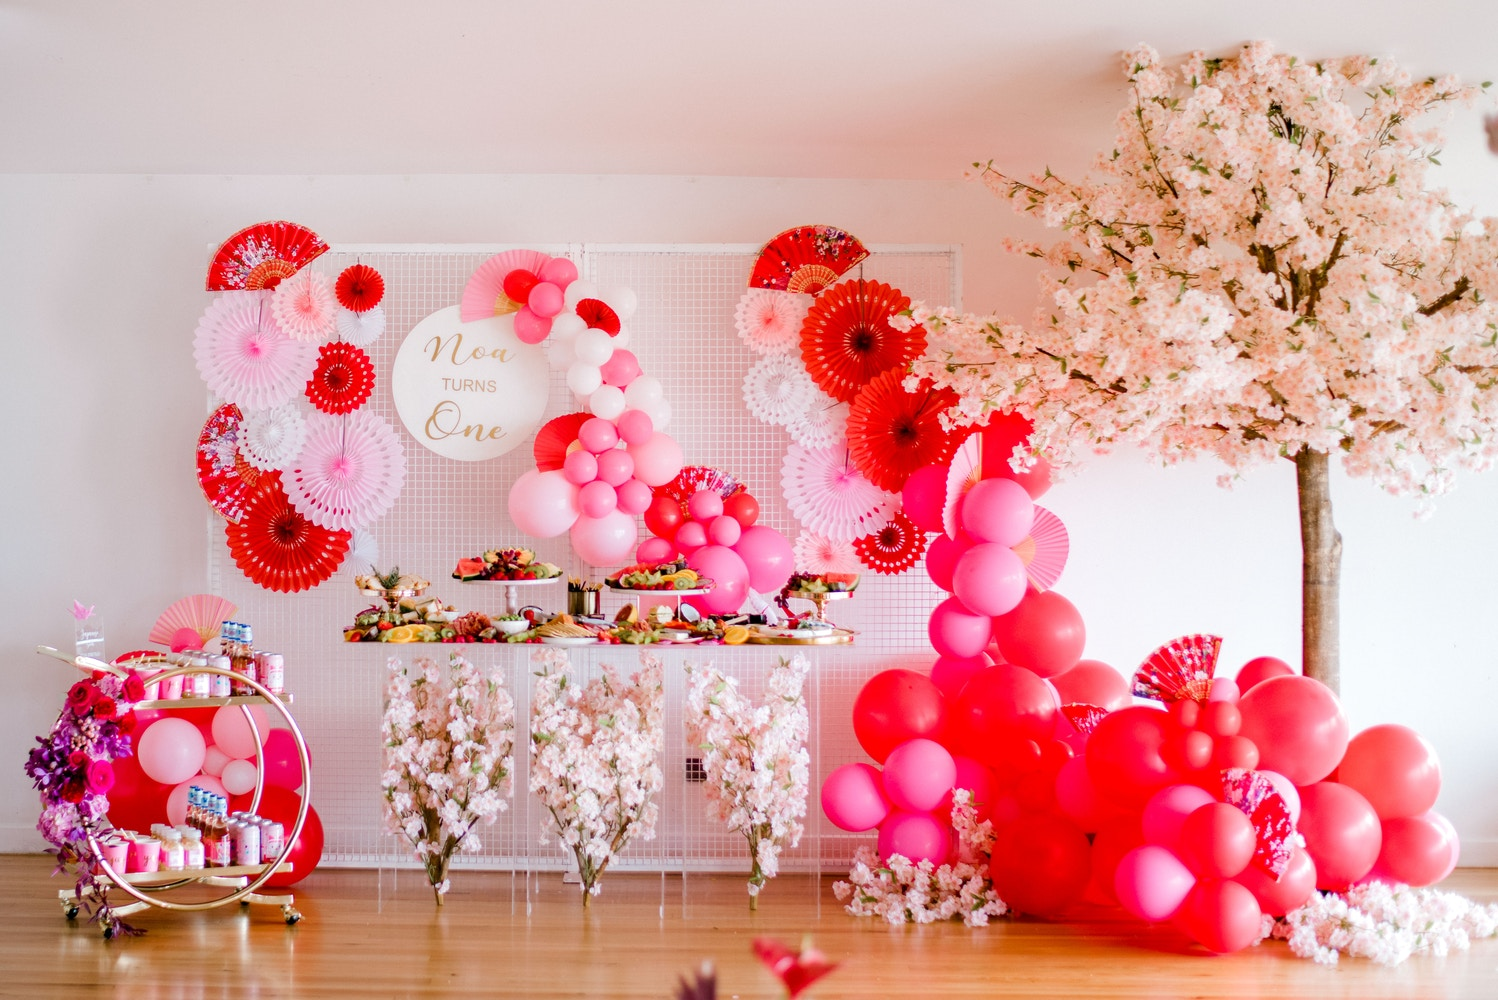 SUSHI & SAKURA: NOA'S JAPAN-INSPIRED 1ST BIRTHDAY